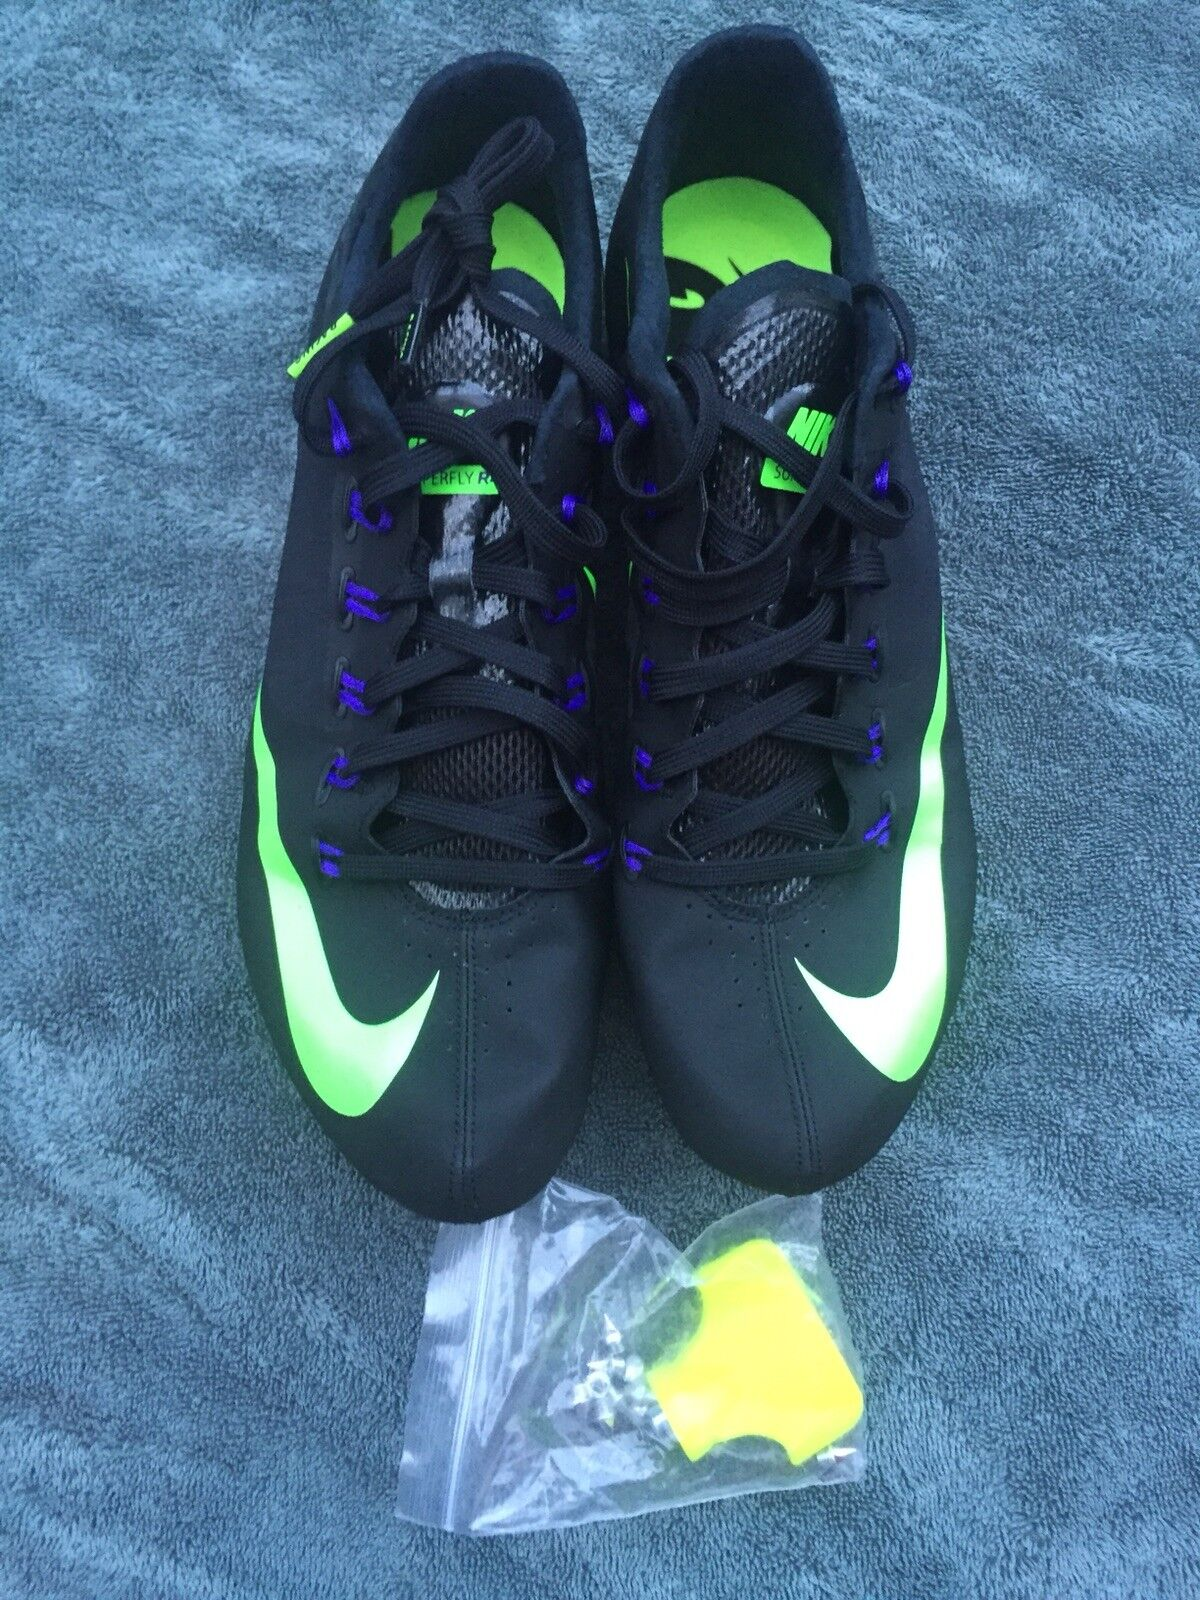 low priced 5fdf1 9bc21 ... Nike Zoom Superfly R4 R4 R4 Black Track Spikes Mens Size  13 fa3fcf ...